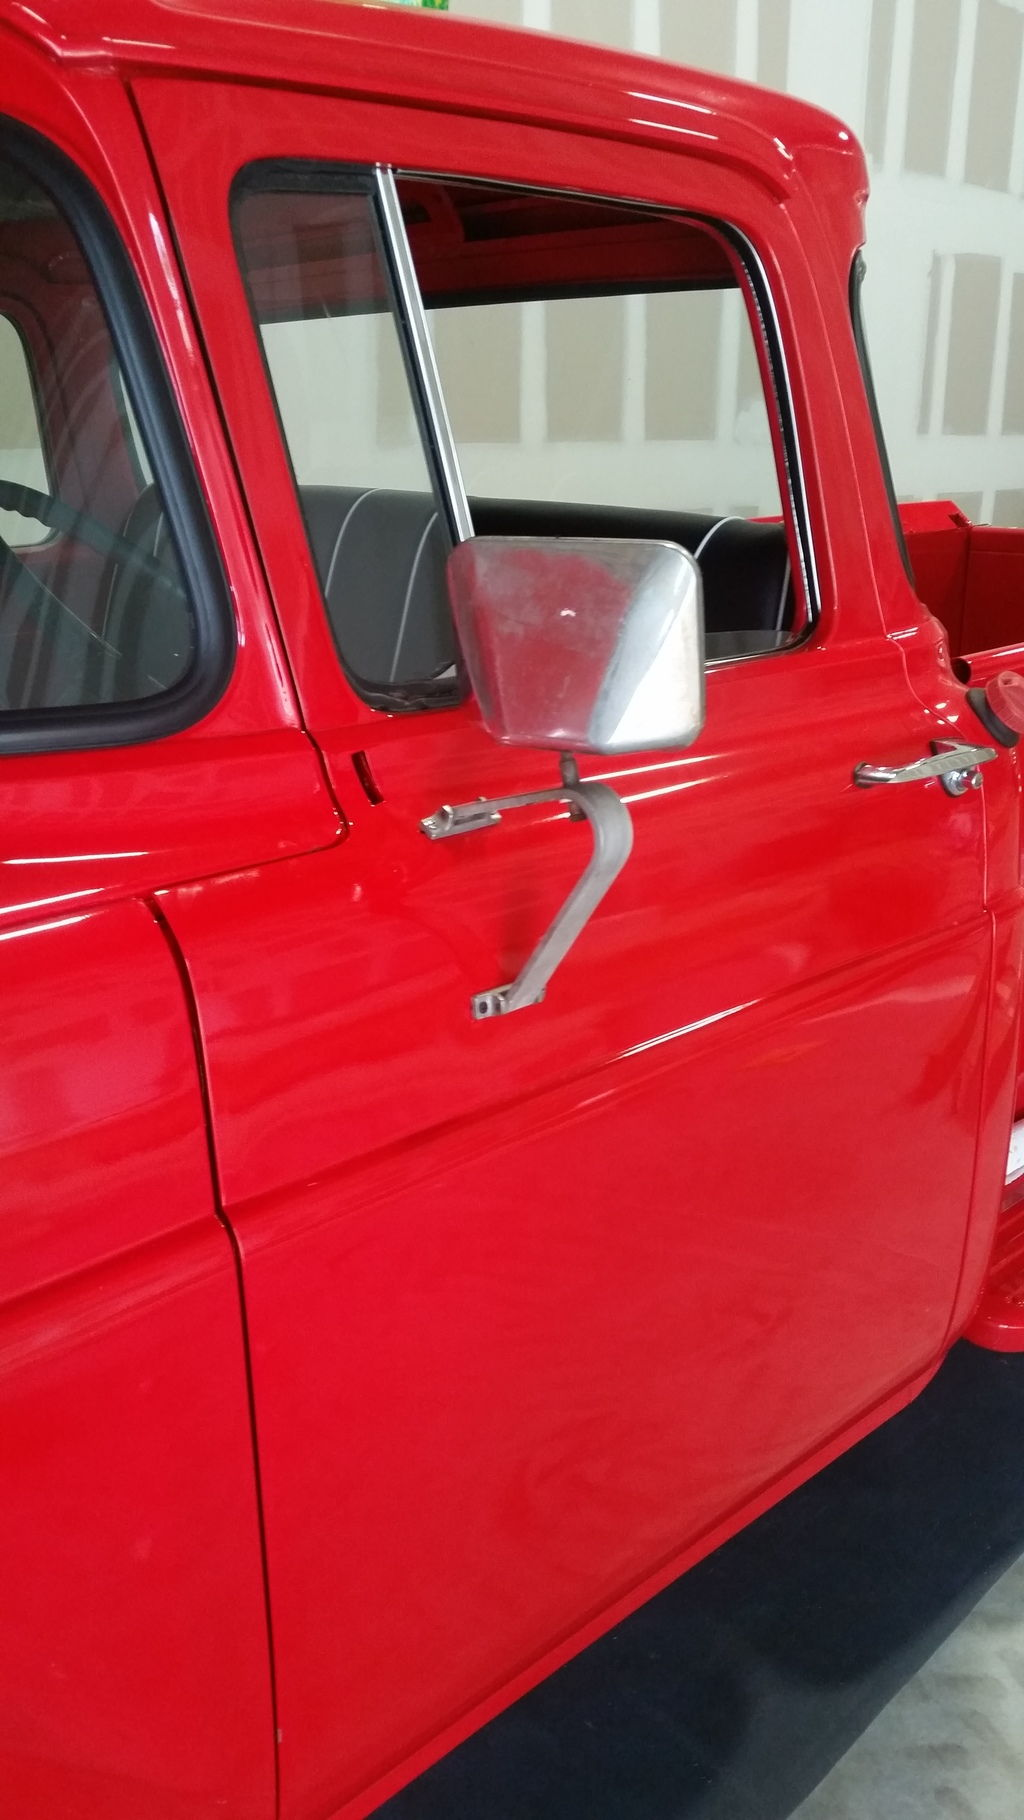 1959 Ford F100 Sheet Metal >> 4wd Original or Alteration?? - Ford Truck Enthusiasts Forums